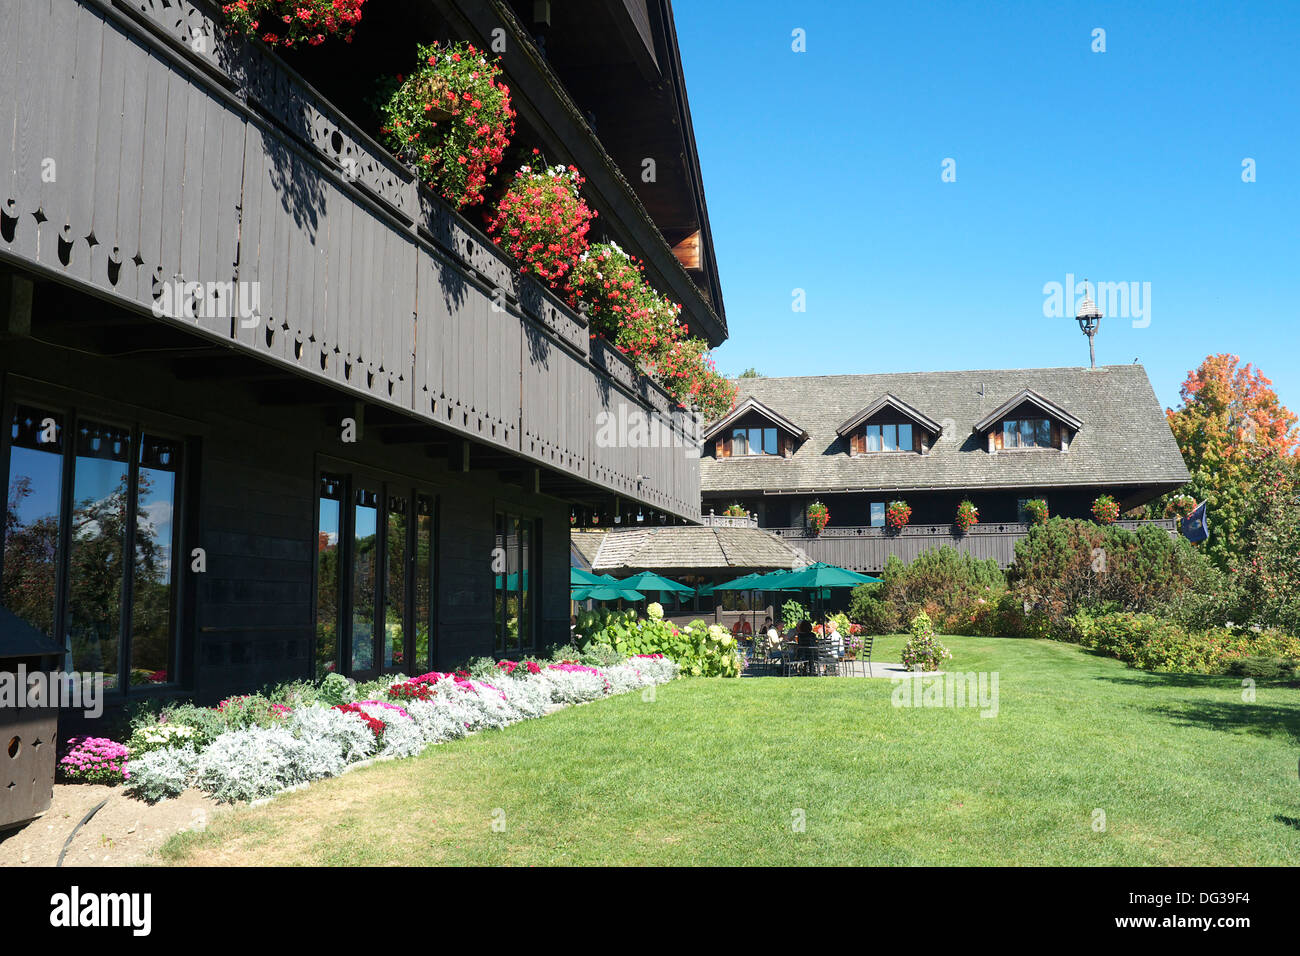 Trapp Family Lodge in Stowe, Vermont - Stock Image